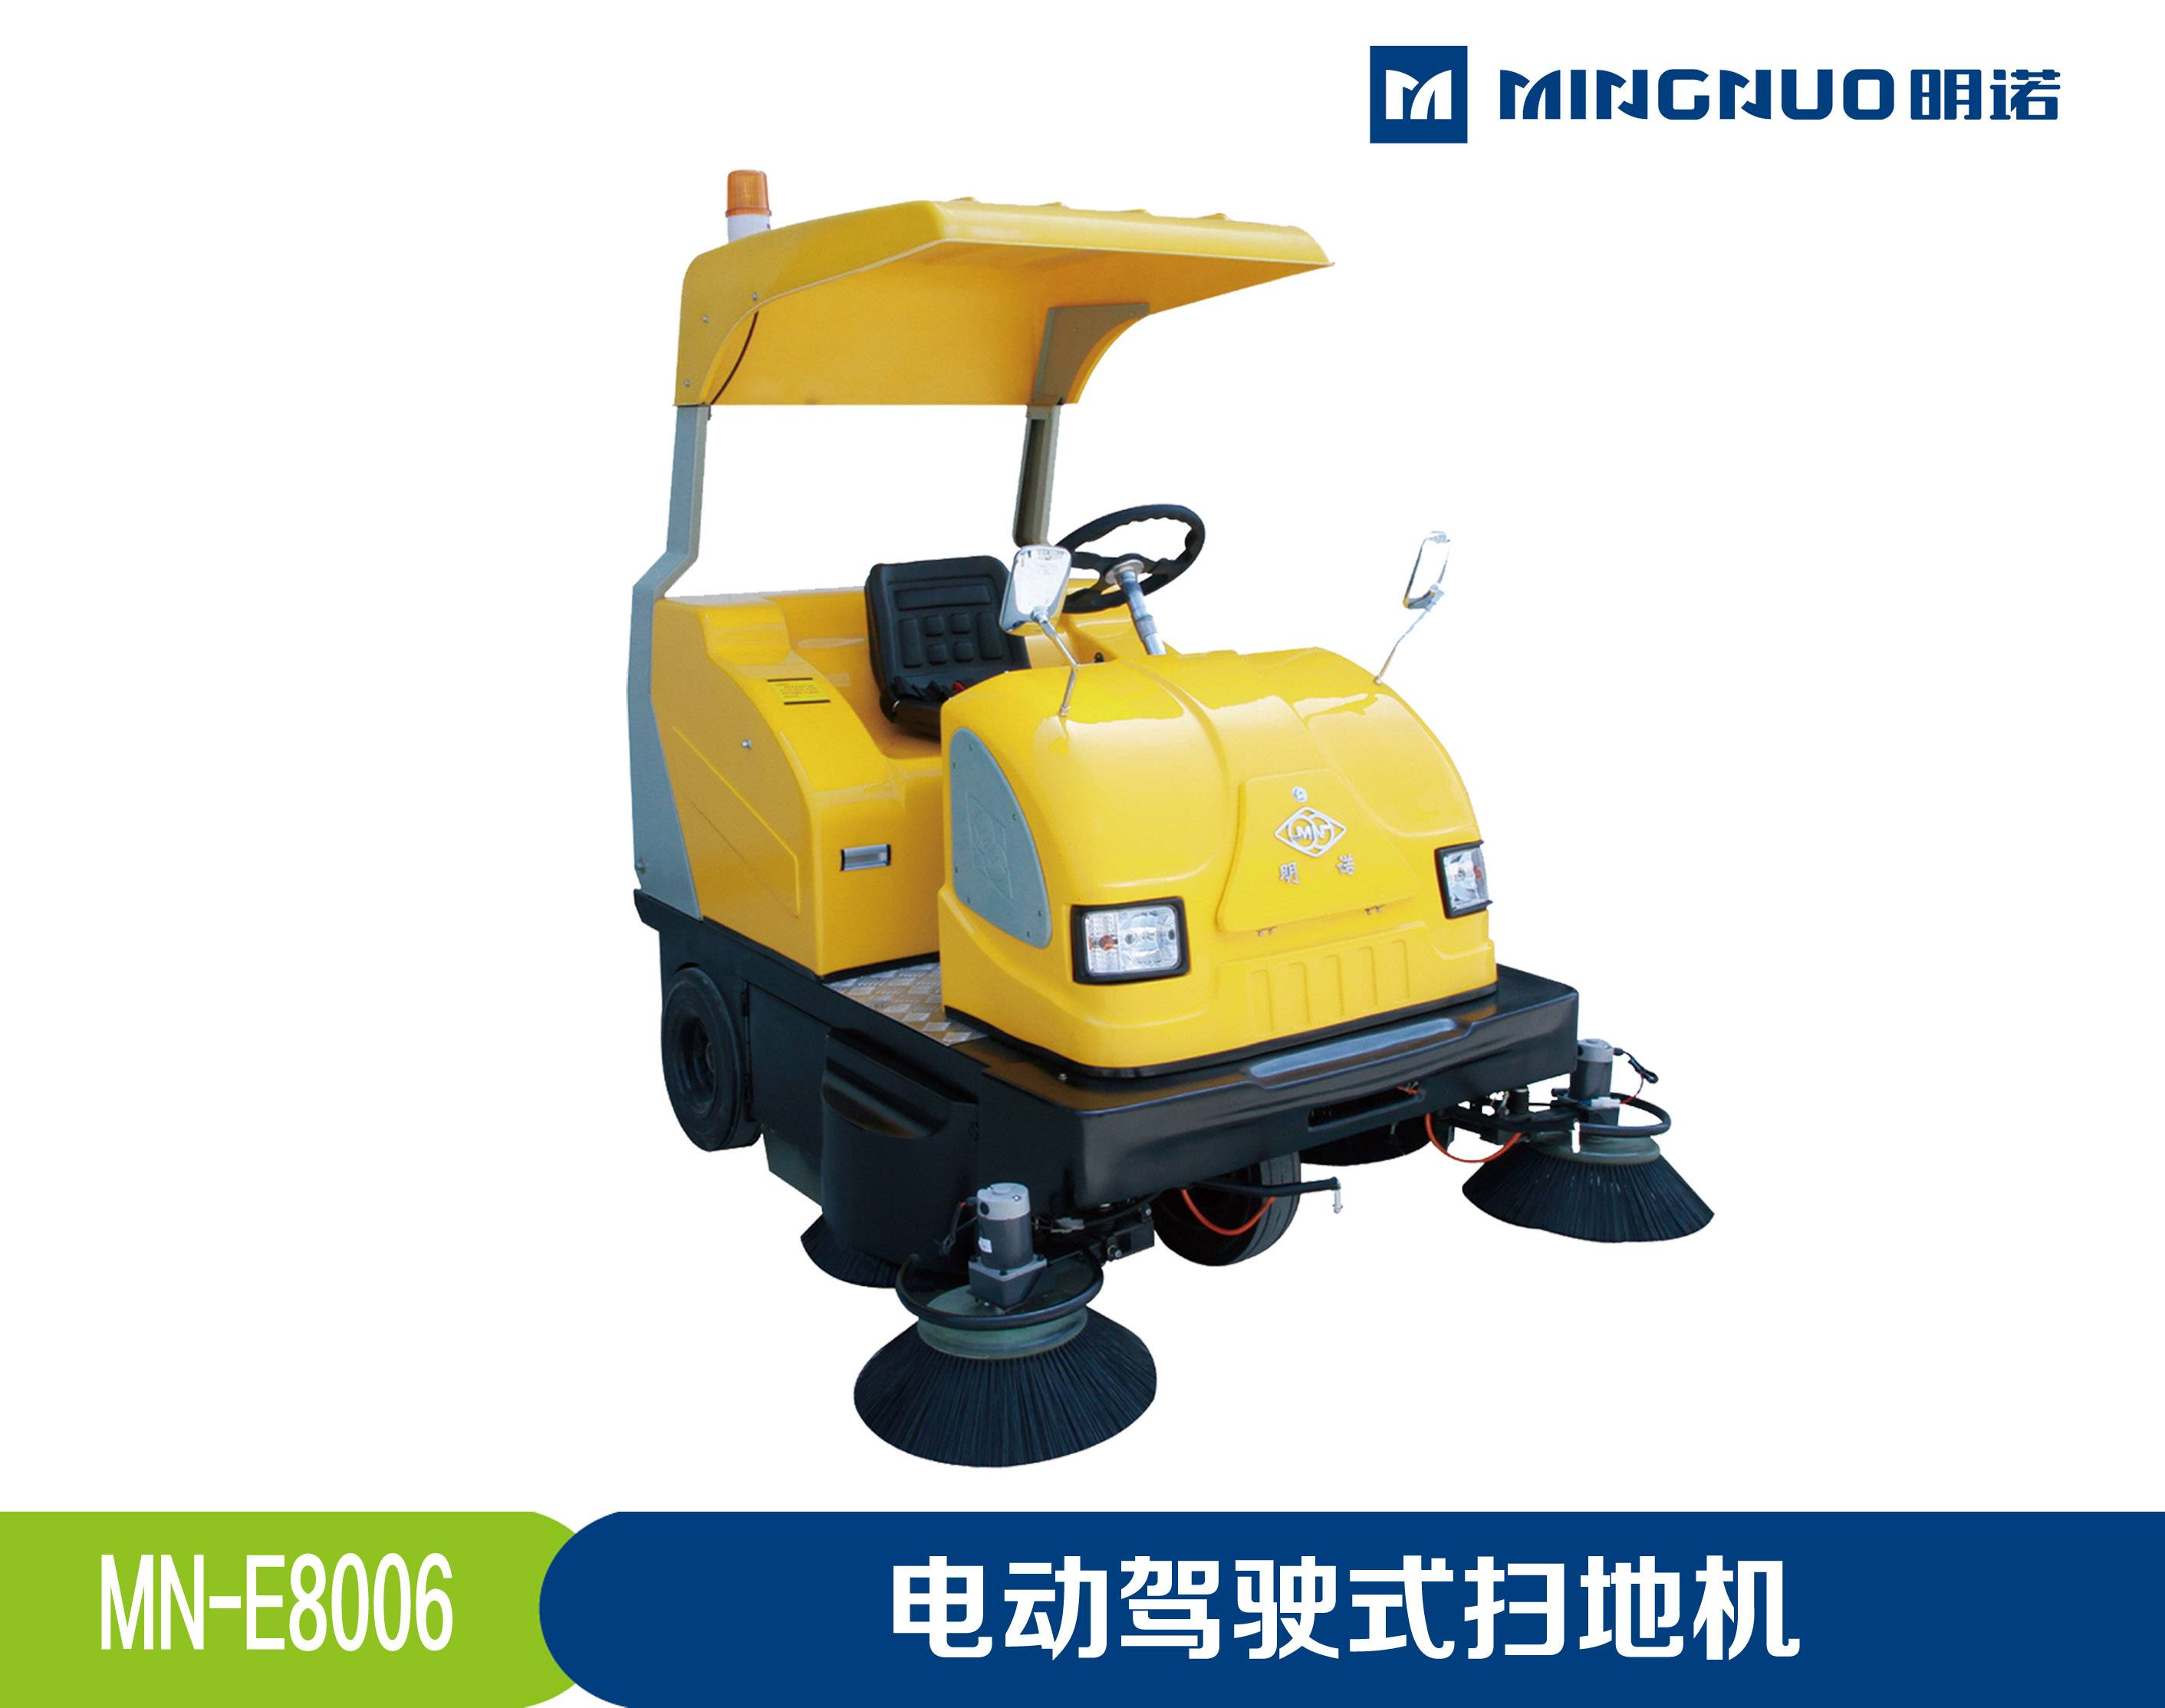 MN-E8006/MN-E800L road sweeper (with spray device)